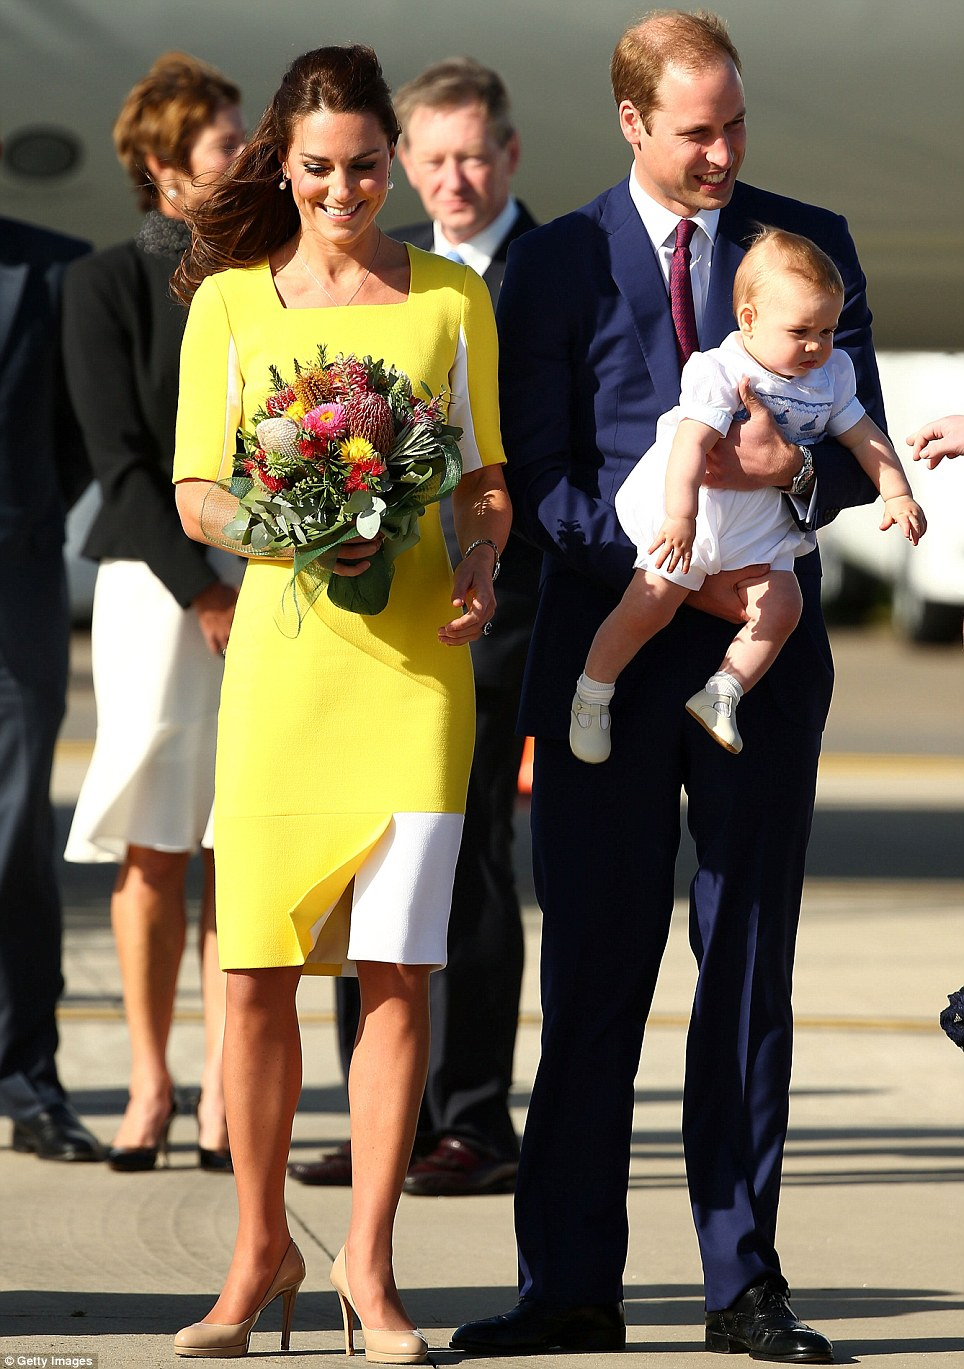 Warm welcome: Kate clutched a bunch of native Australian flowers, meanwhile William held baby George in his arms as they made their way across the tarmac